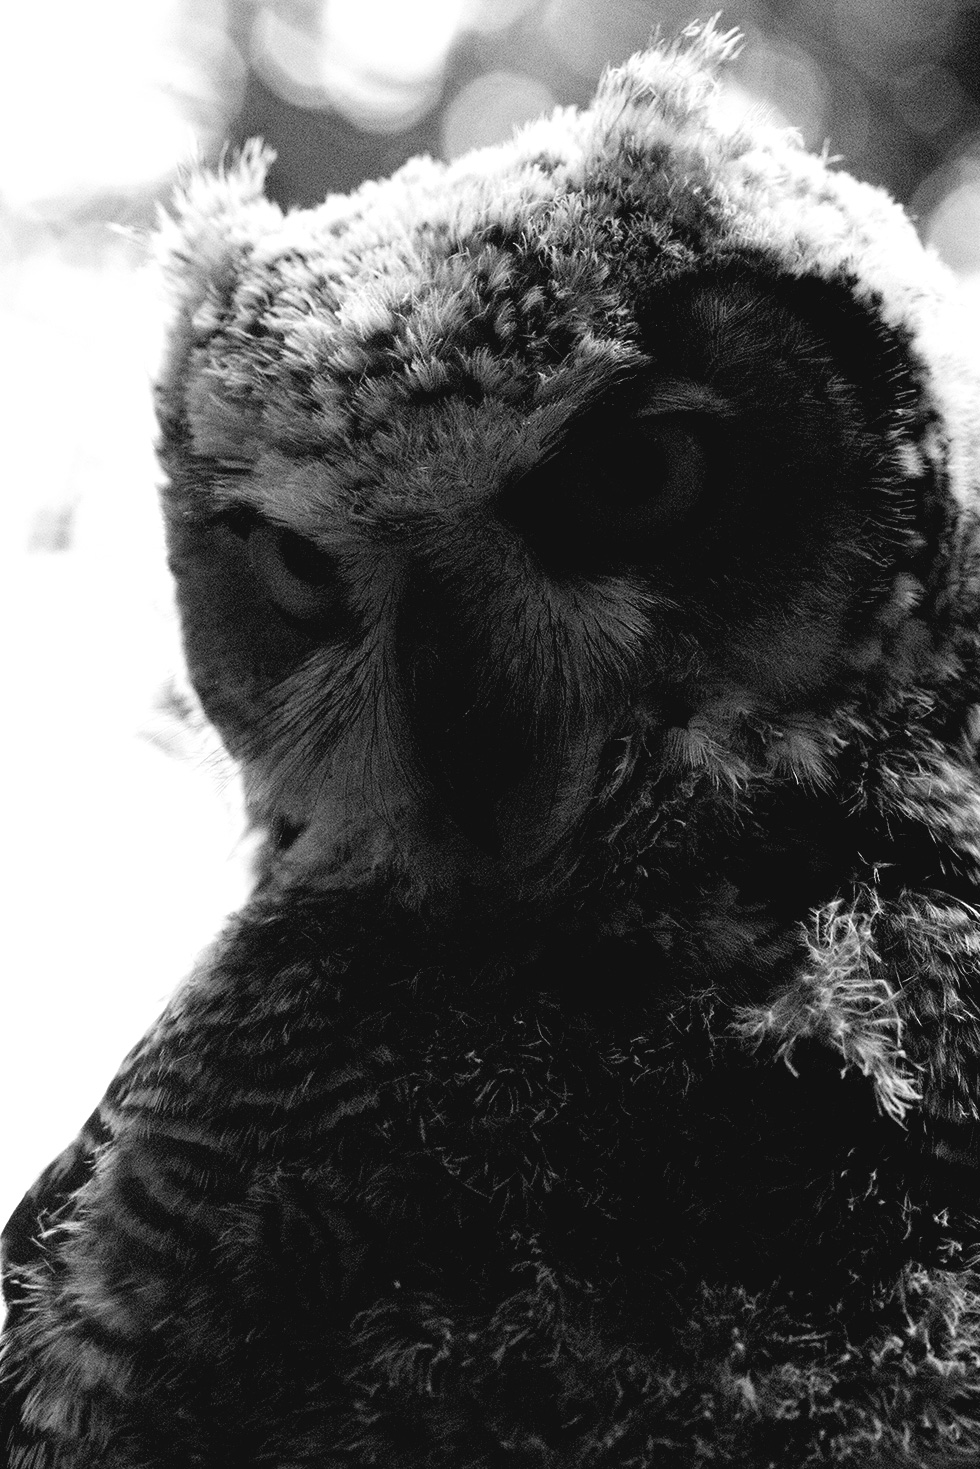 Shadowed picture of a baby great horned owl